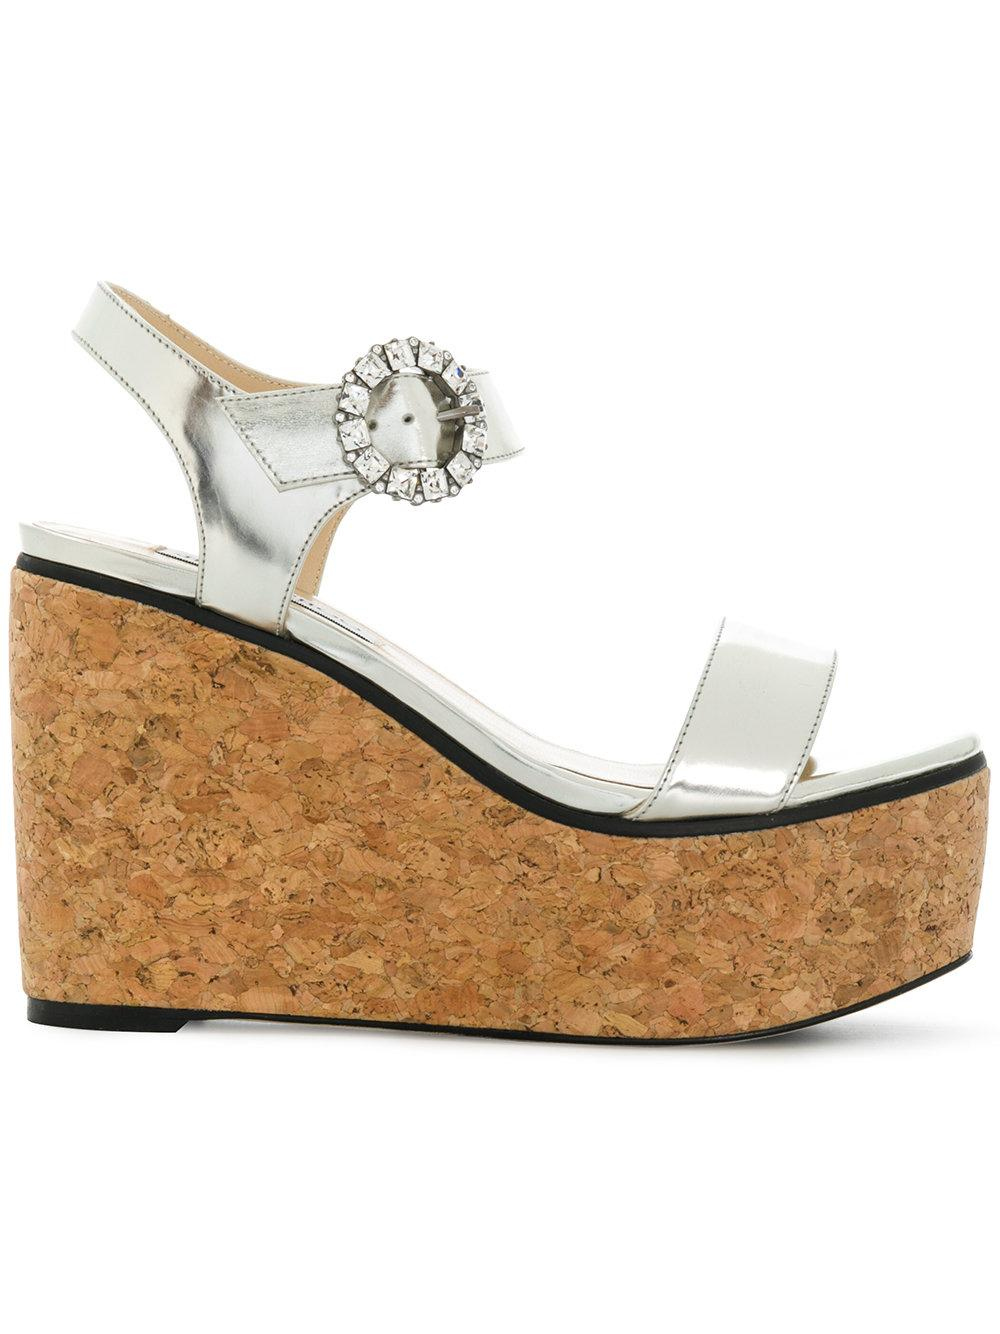 ca88e556a93f Jimmy Choo Nylah 100 Silver Mirror Leather Cork Wedge Sandals With ...